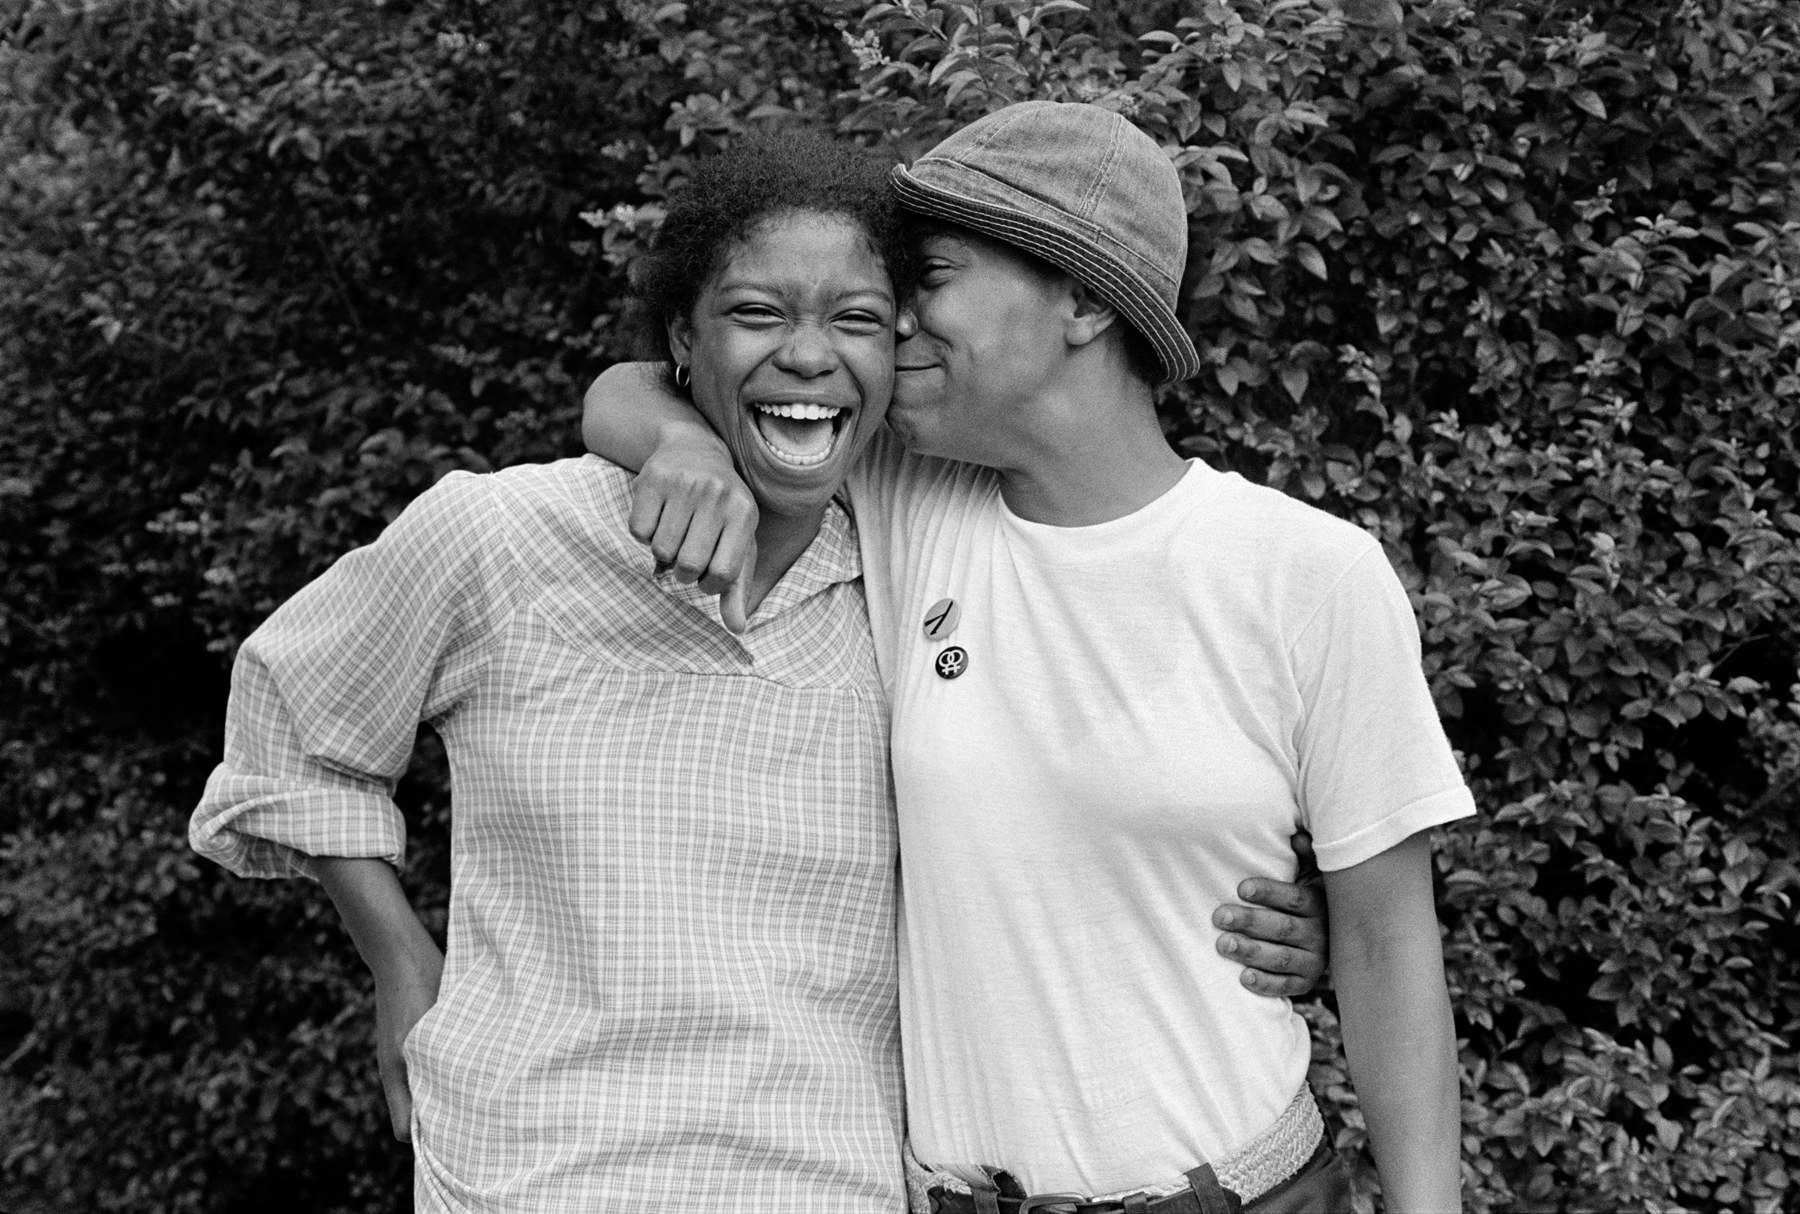 Two Black women smiling and embracing, wearing 1970s clothing